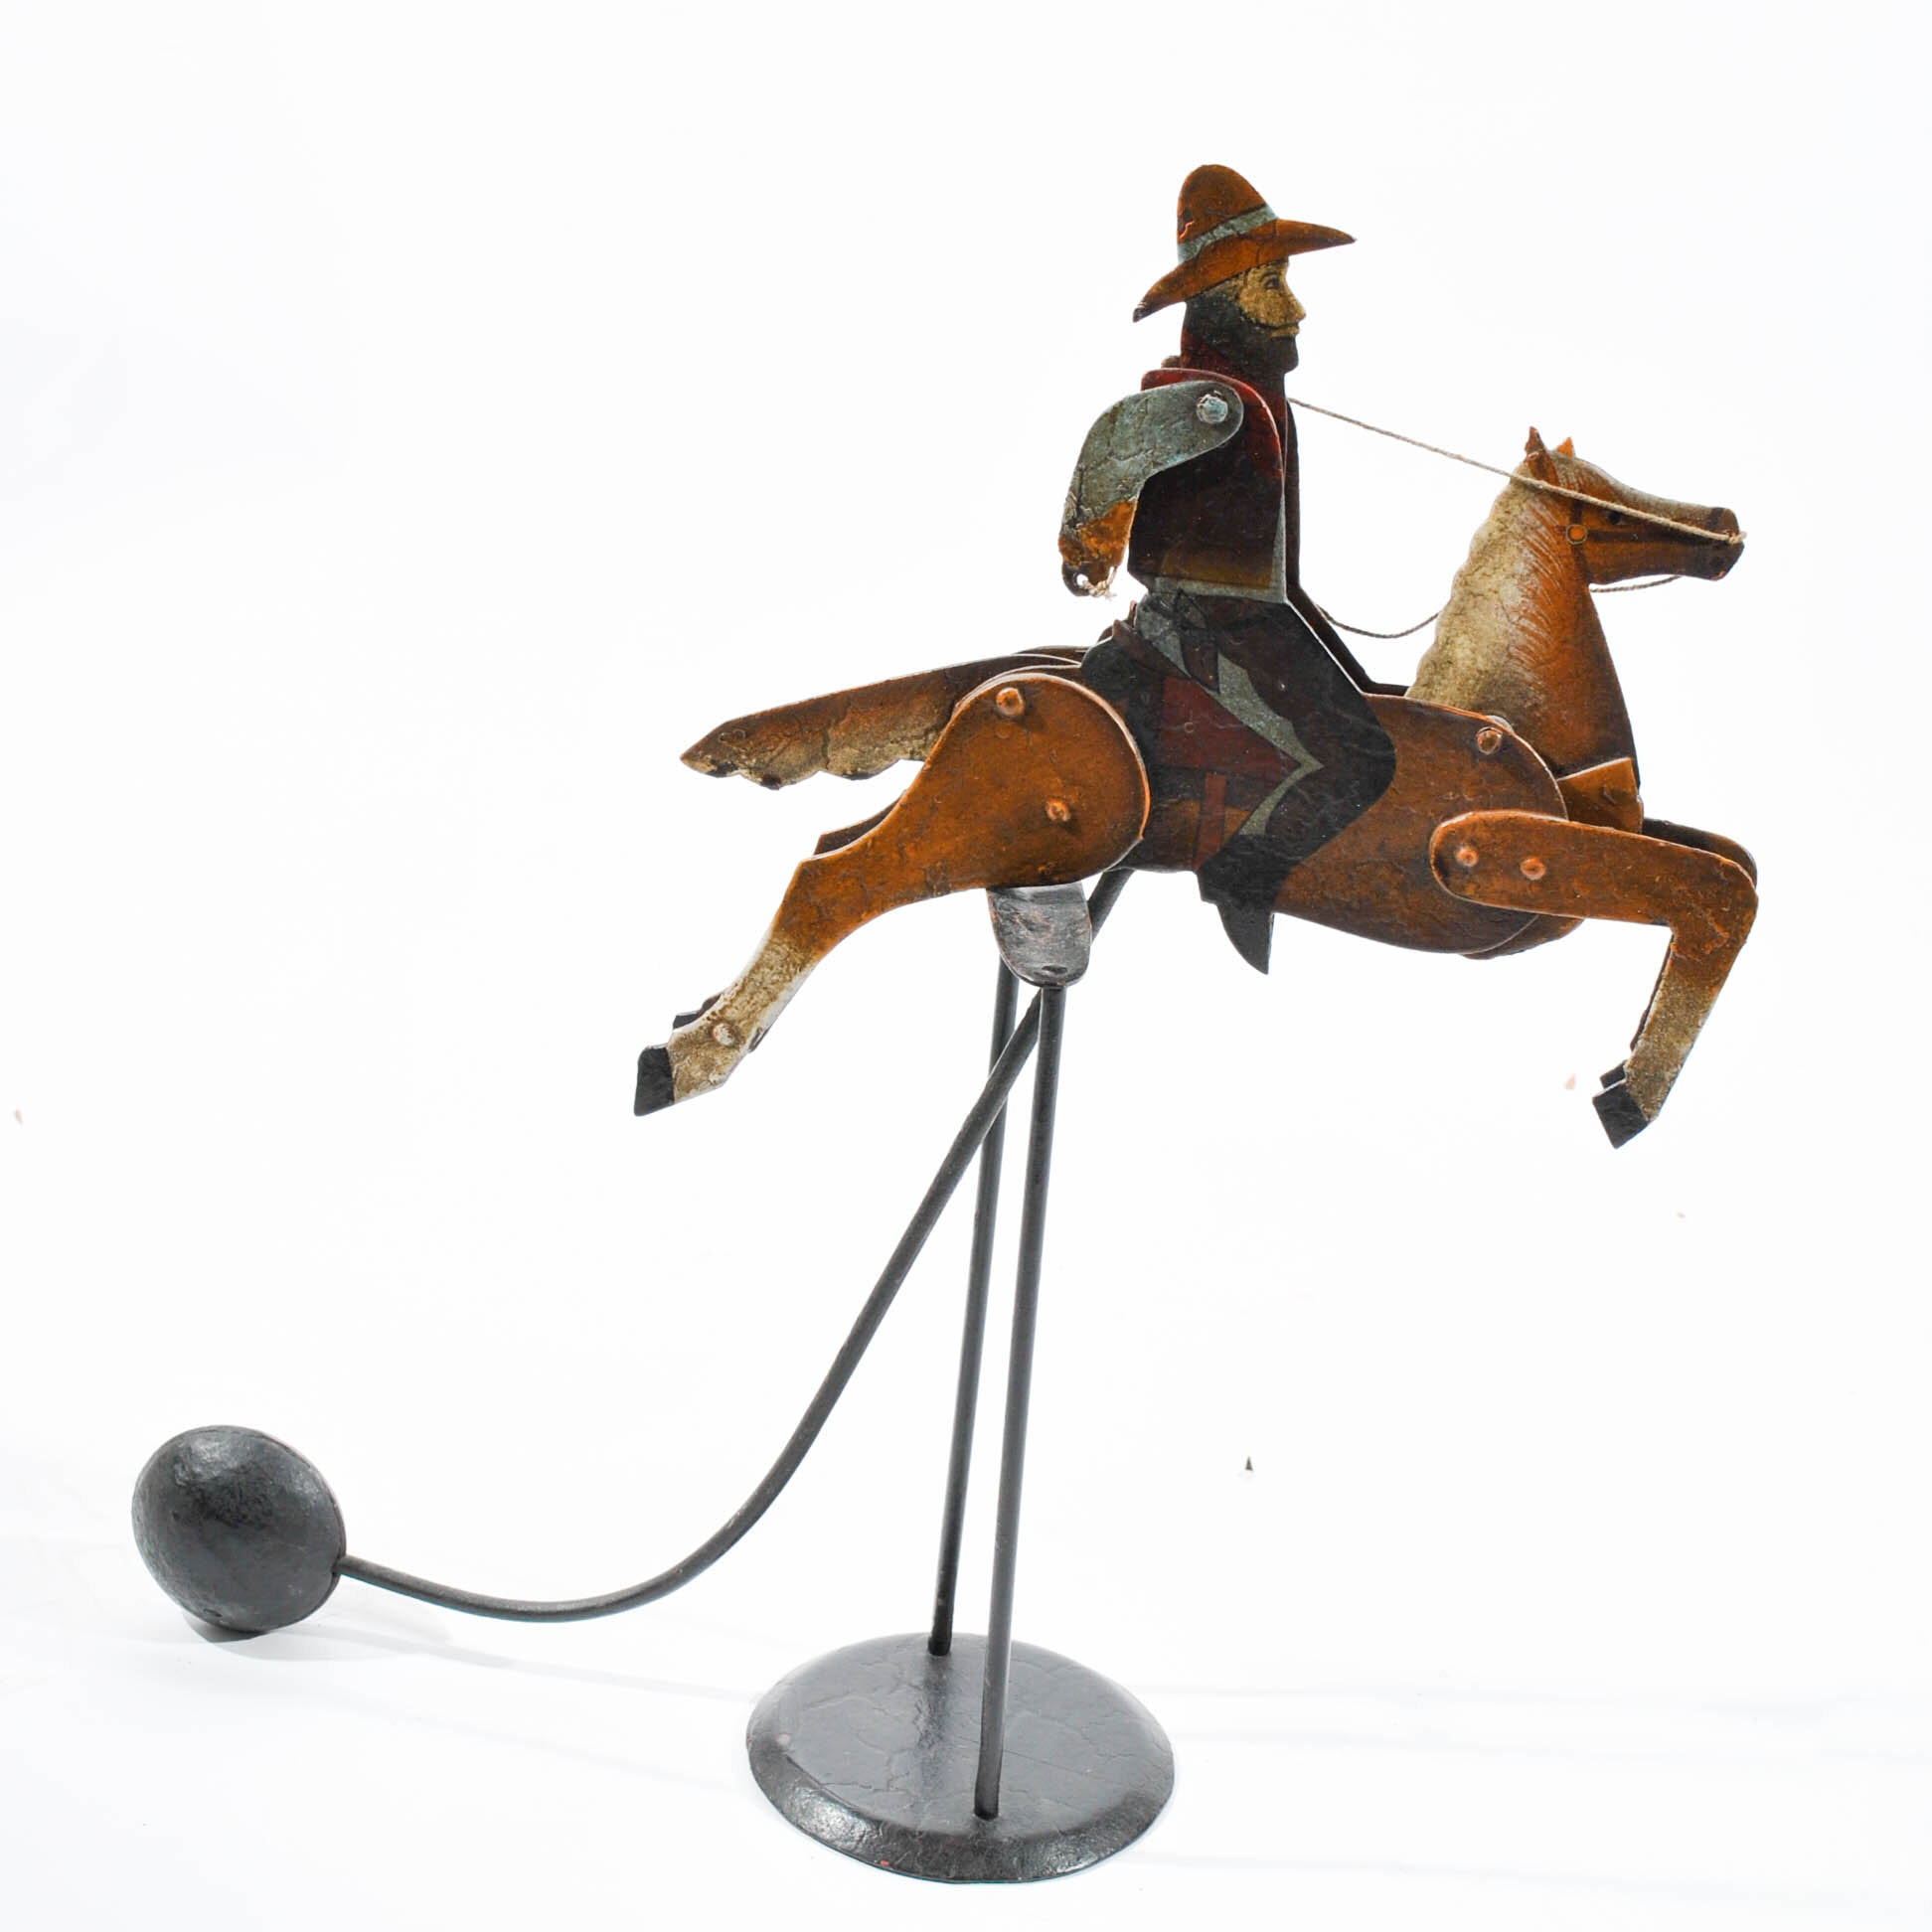 Painted Metal Cowboy and Horse Balancing Toy